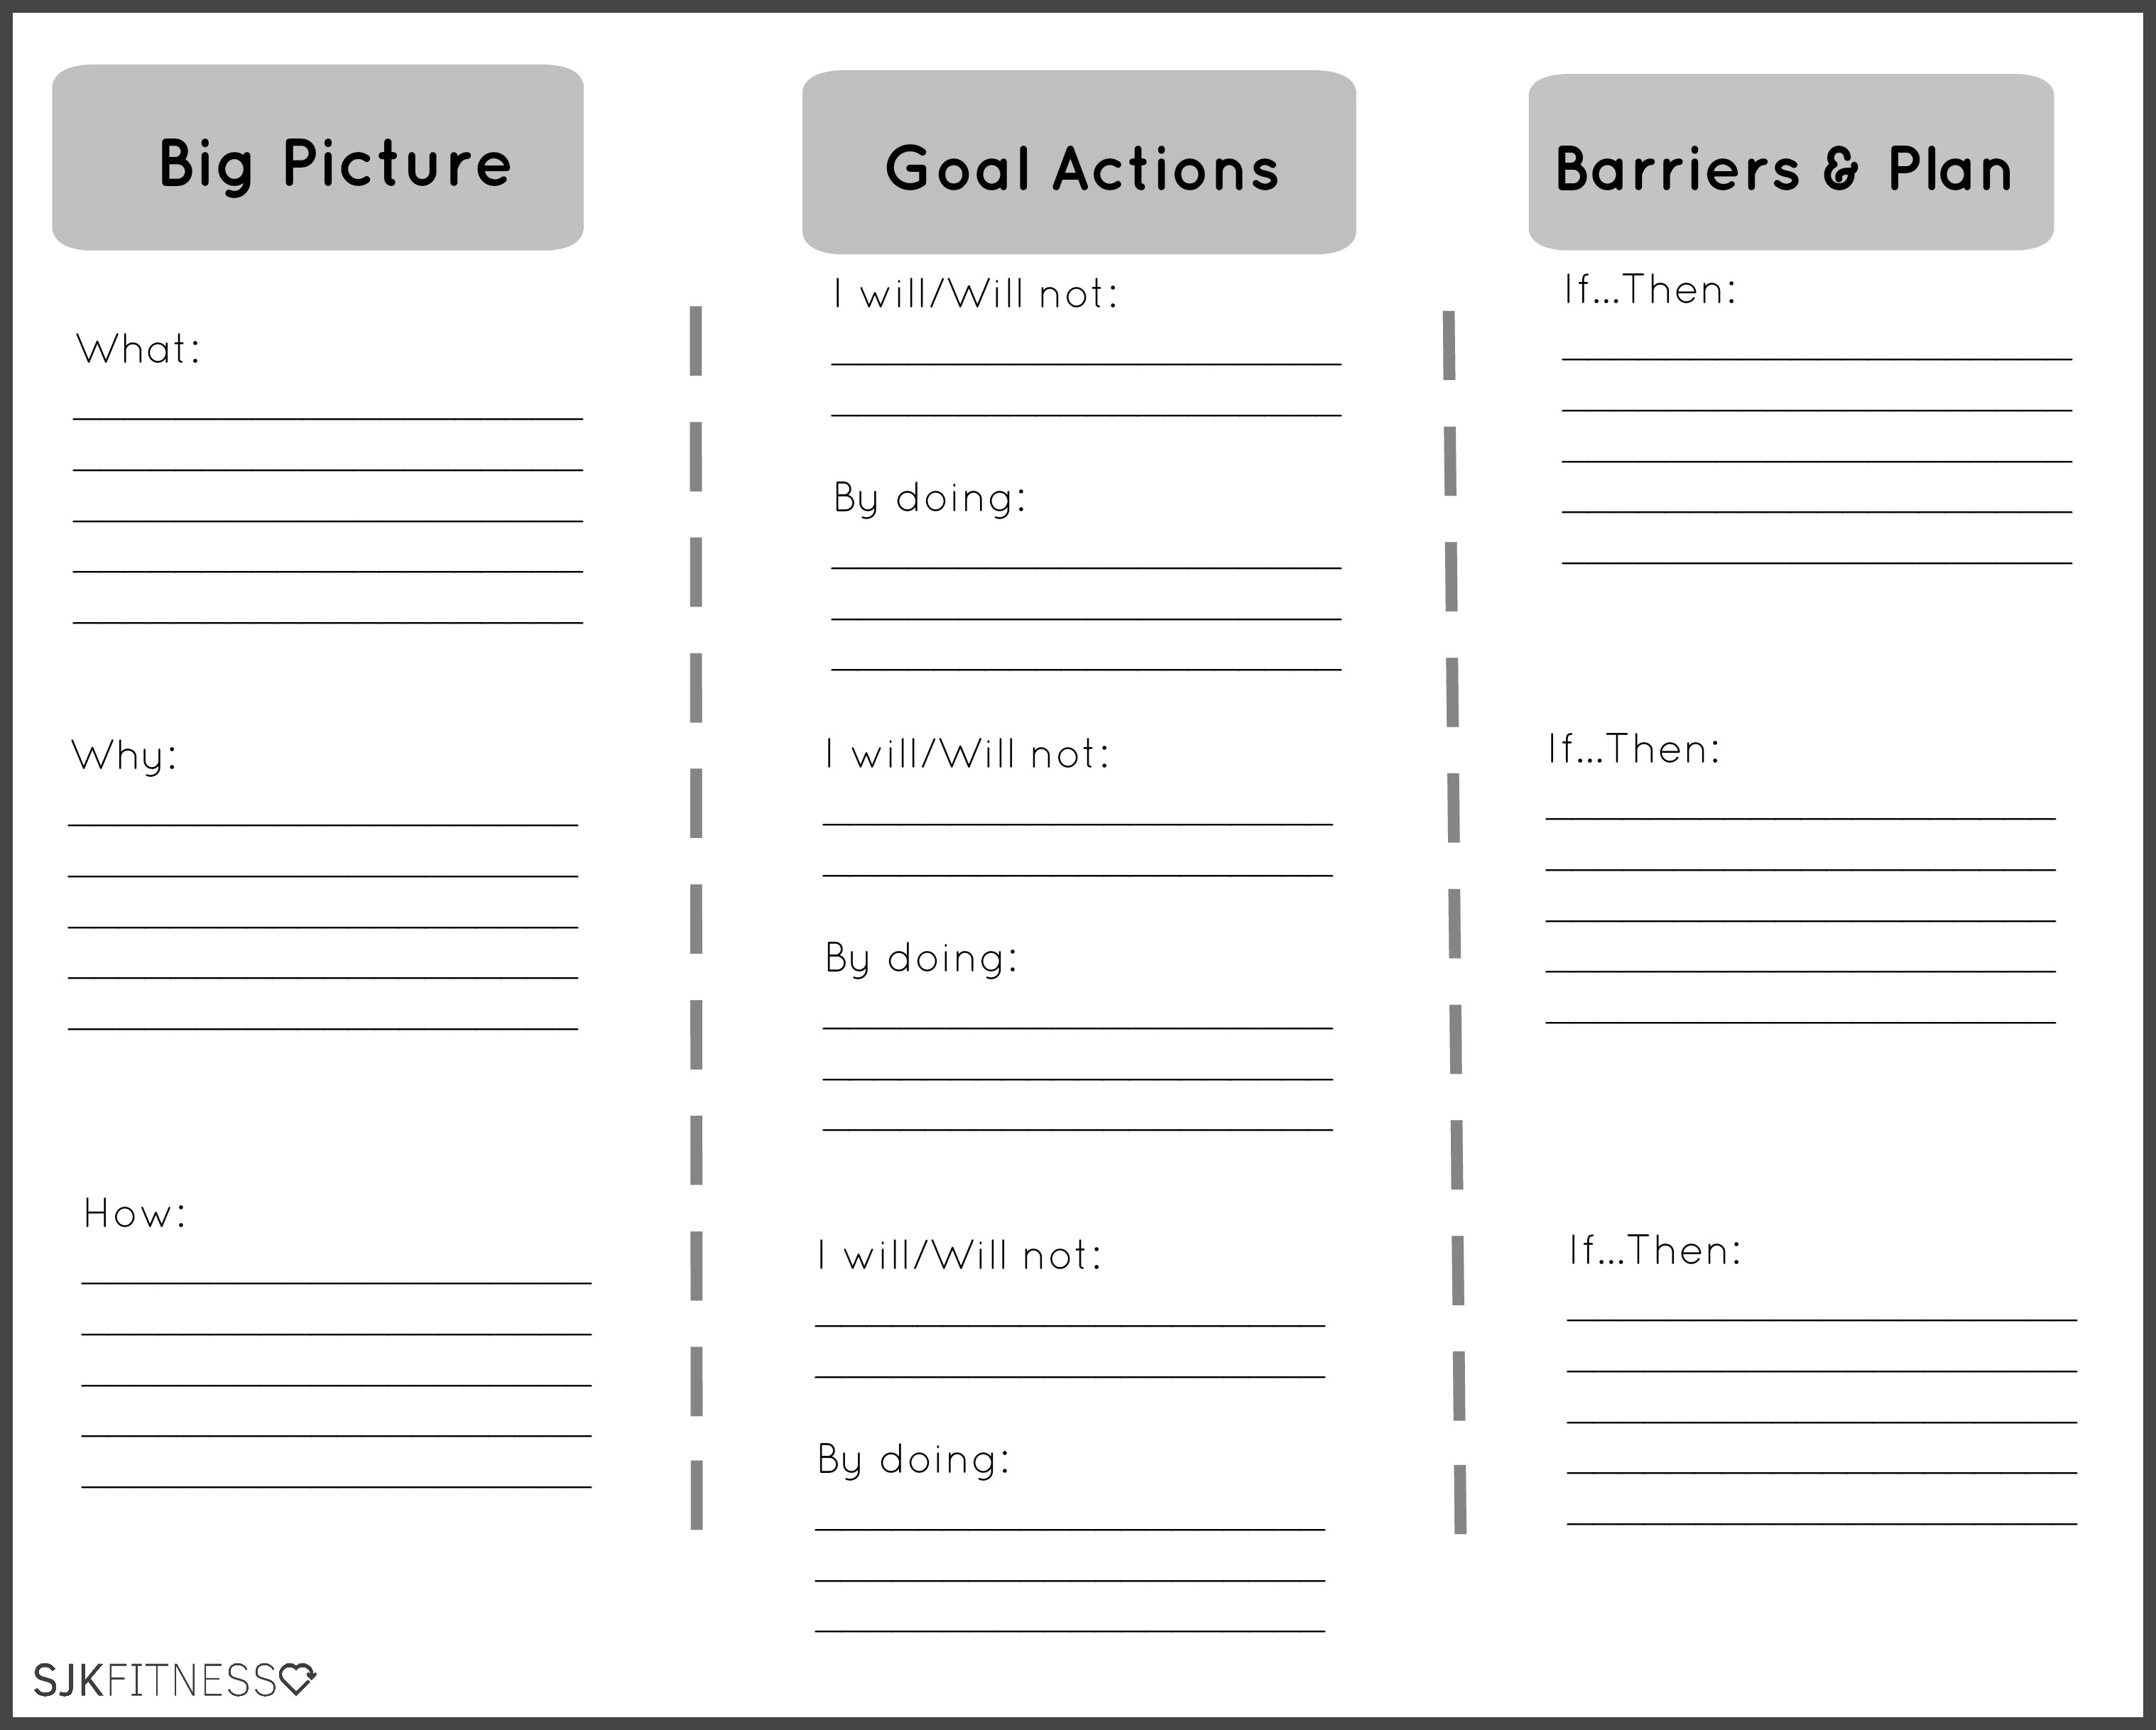 mental health goals template Most Effective Ways To ...